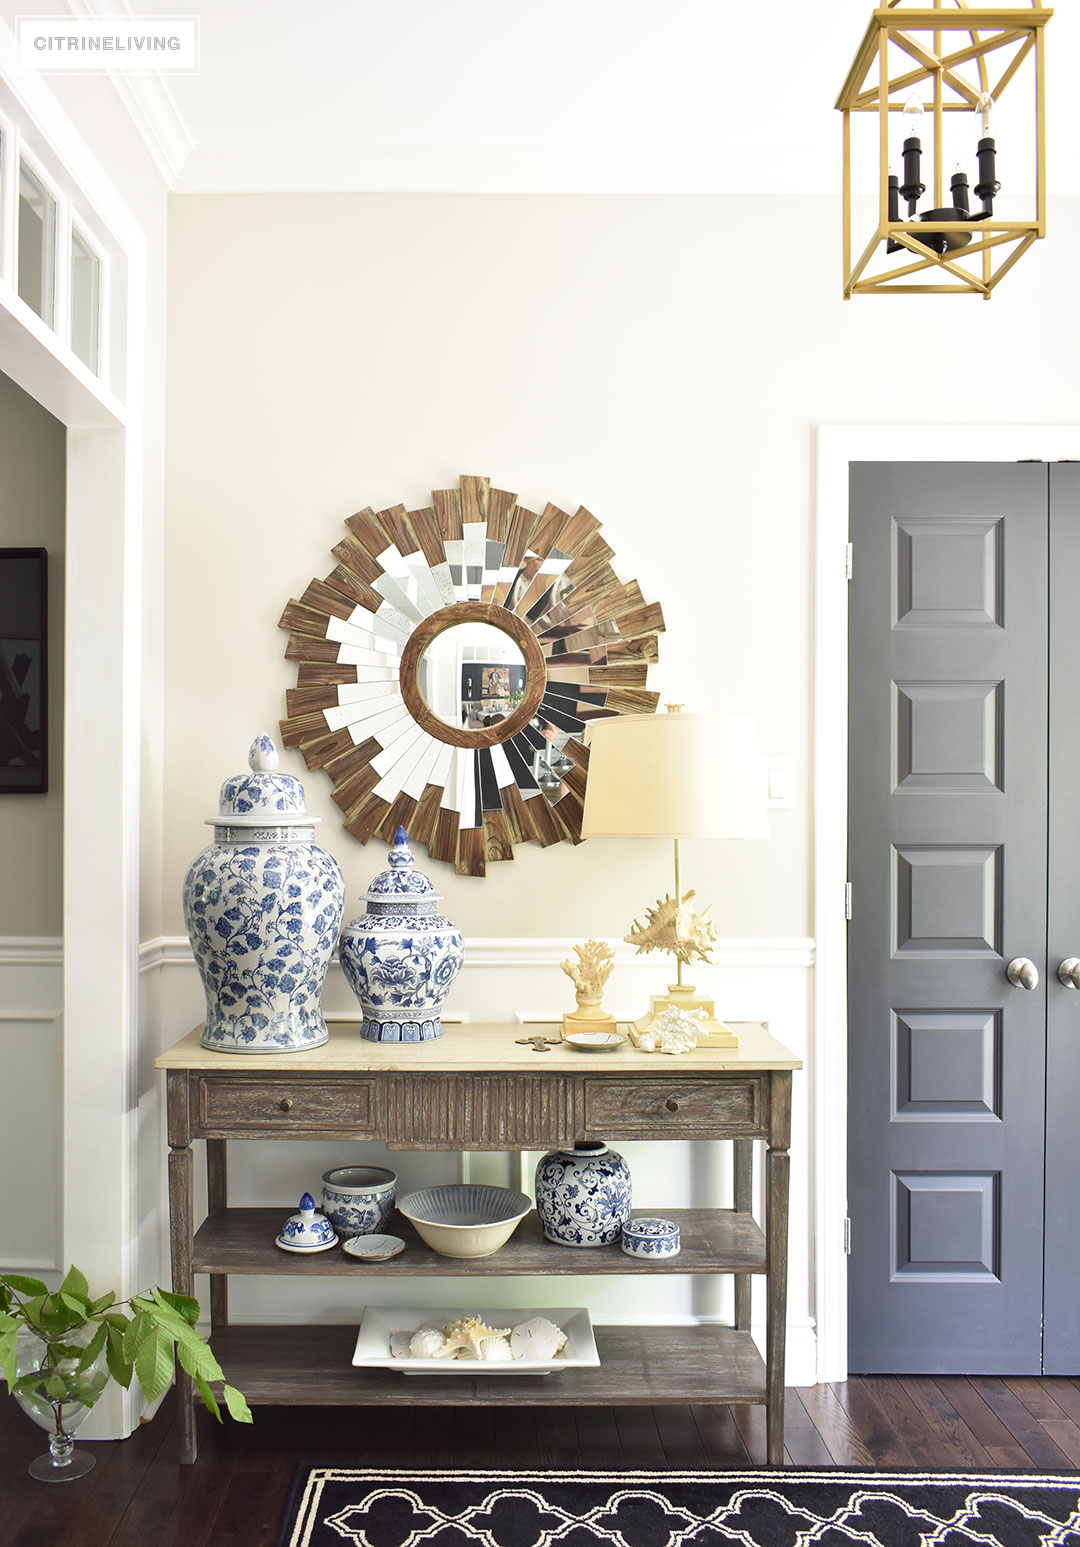 Natural curiosities like starfish, coral, and seashells are perfect for Summer decorating